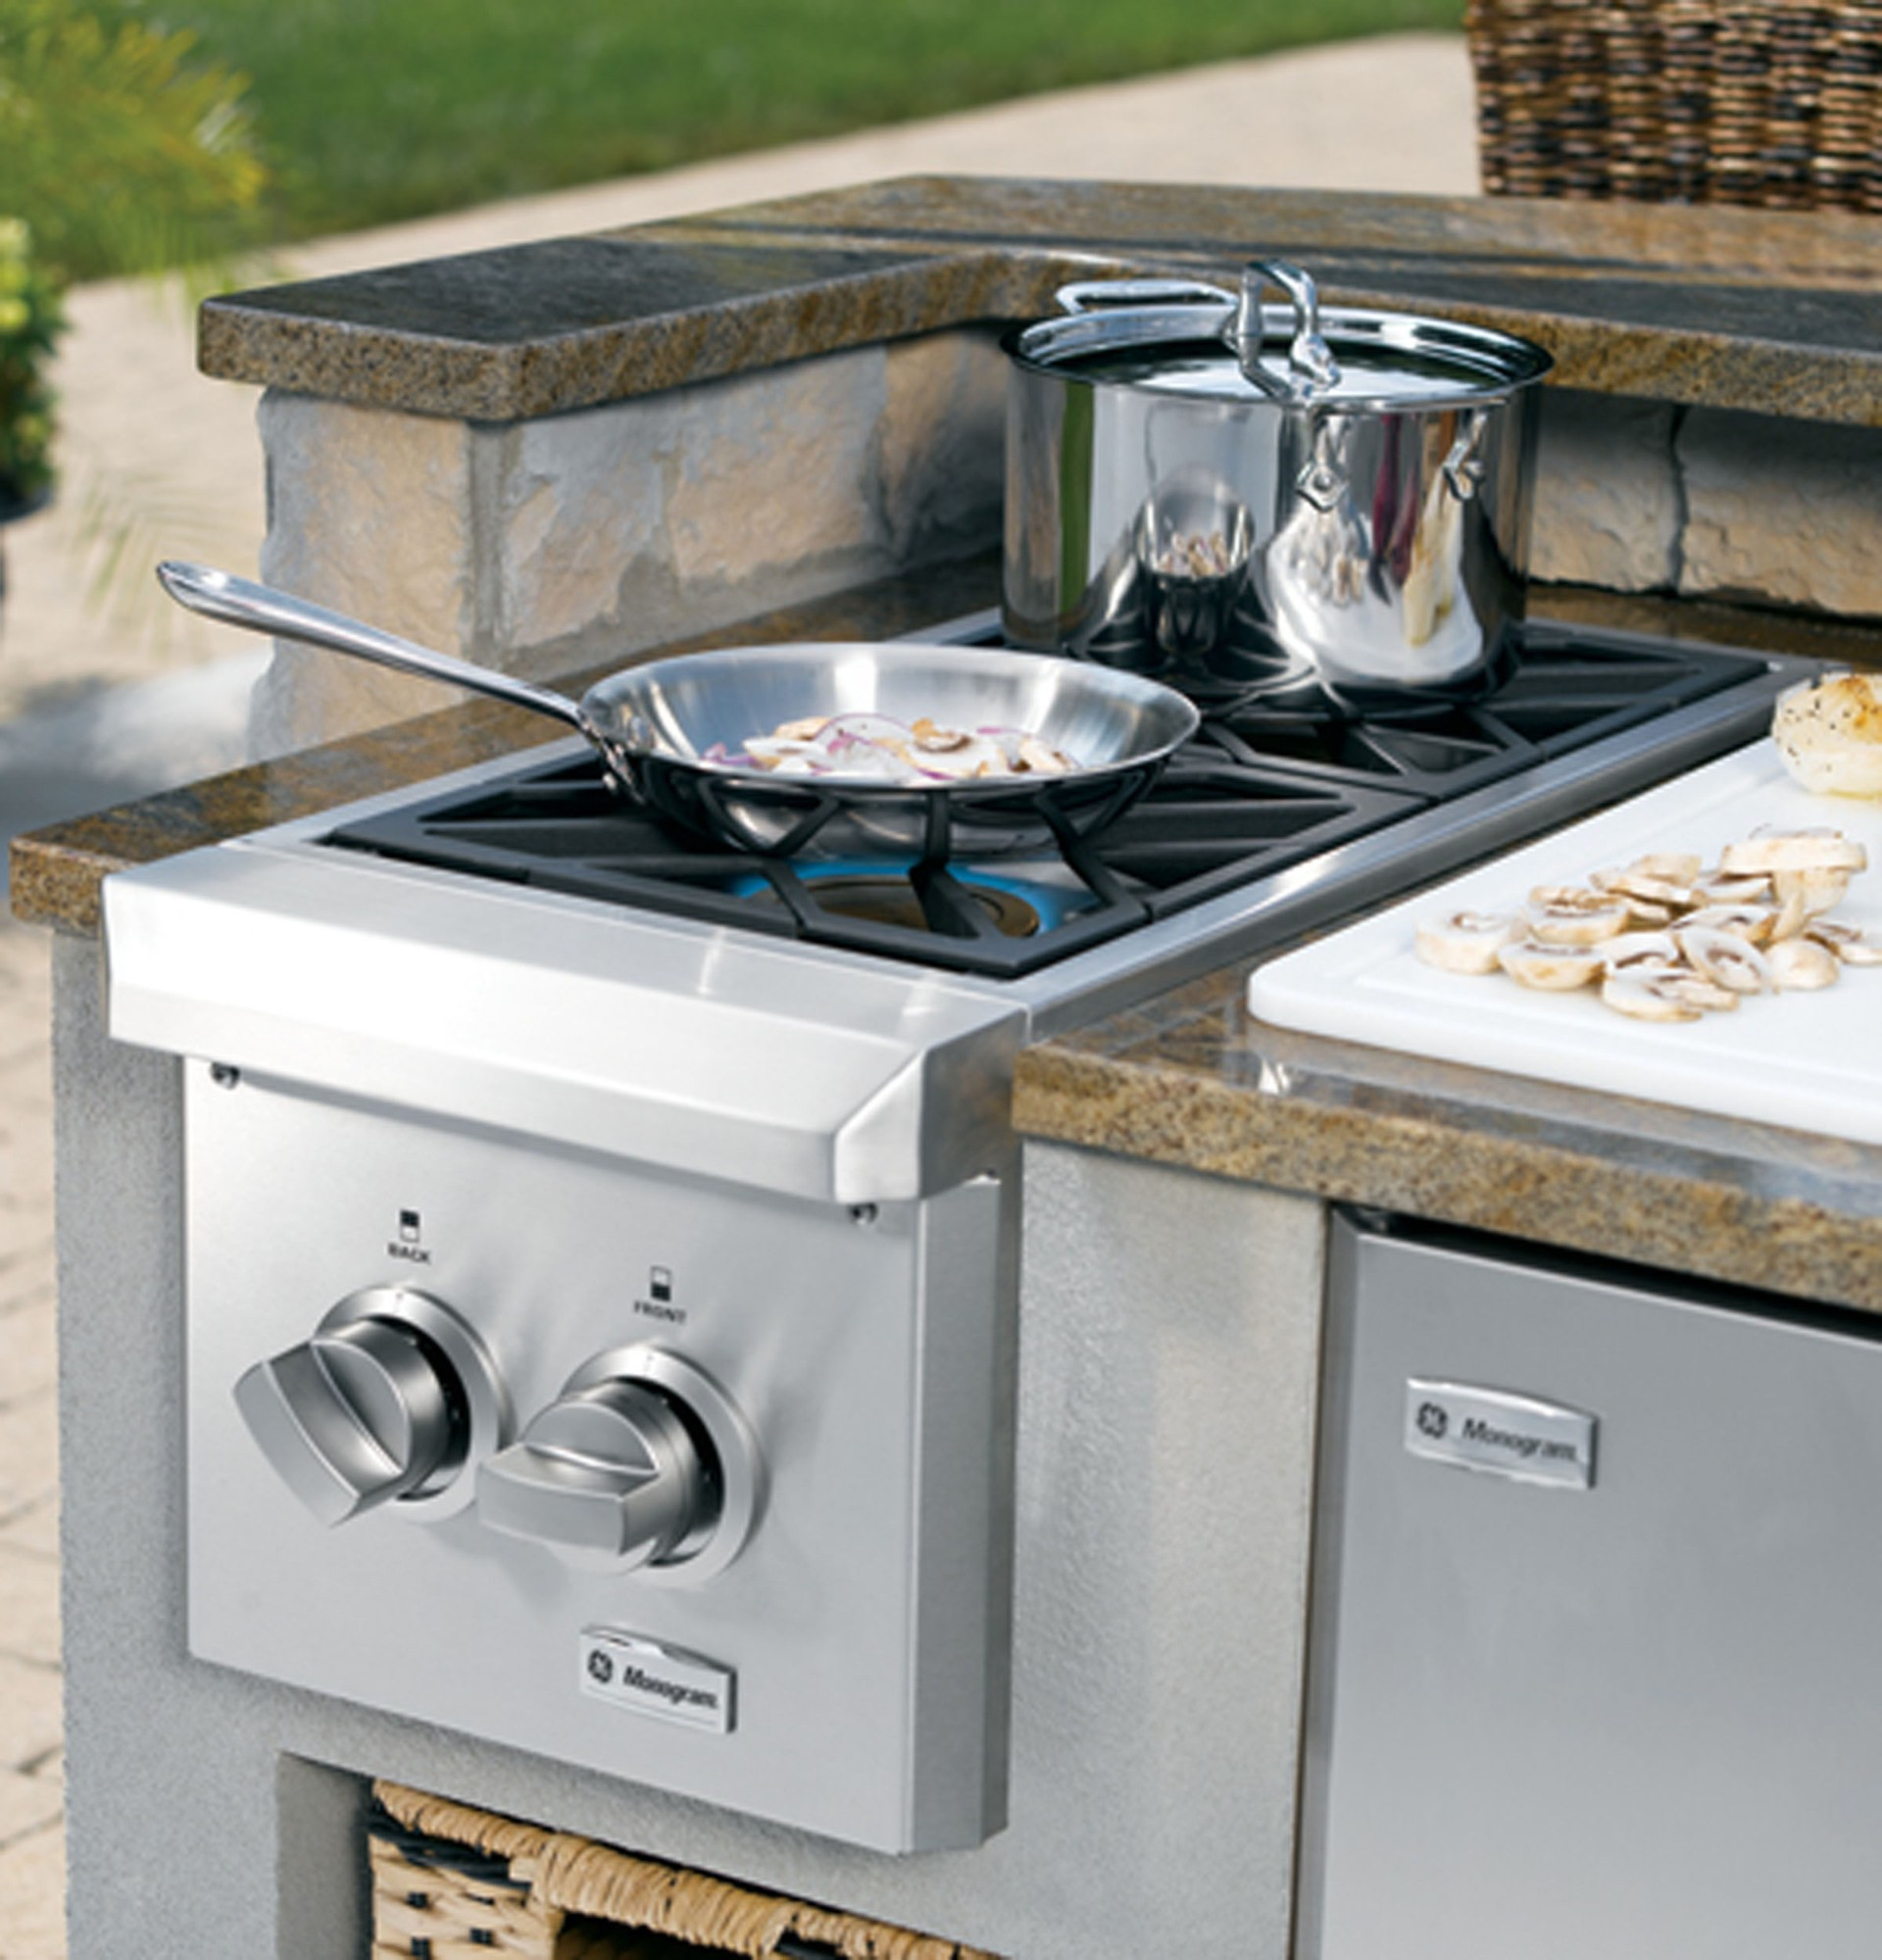 Monogram Dual Burner Outdoor Cooktop (Natural